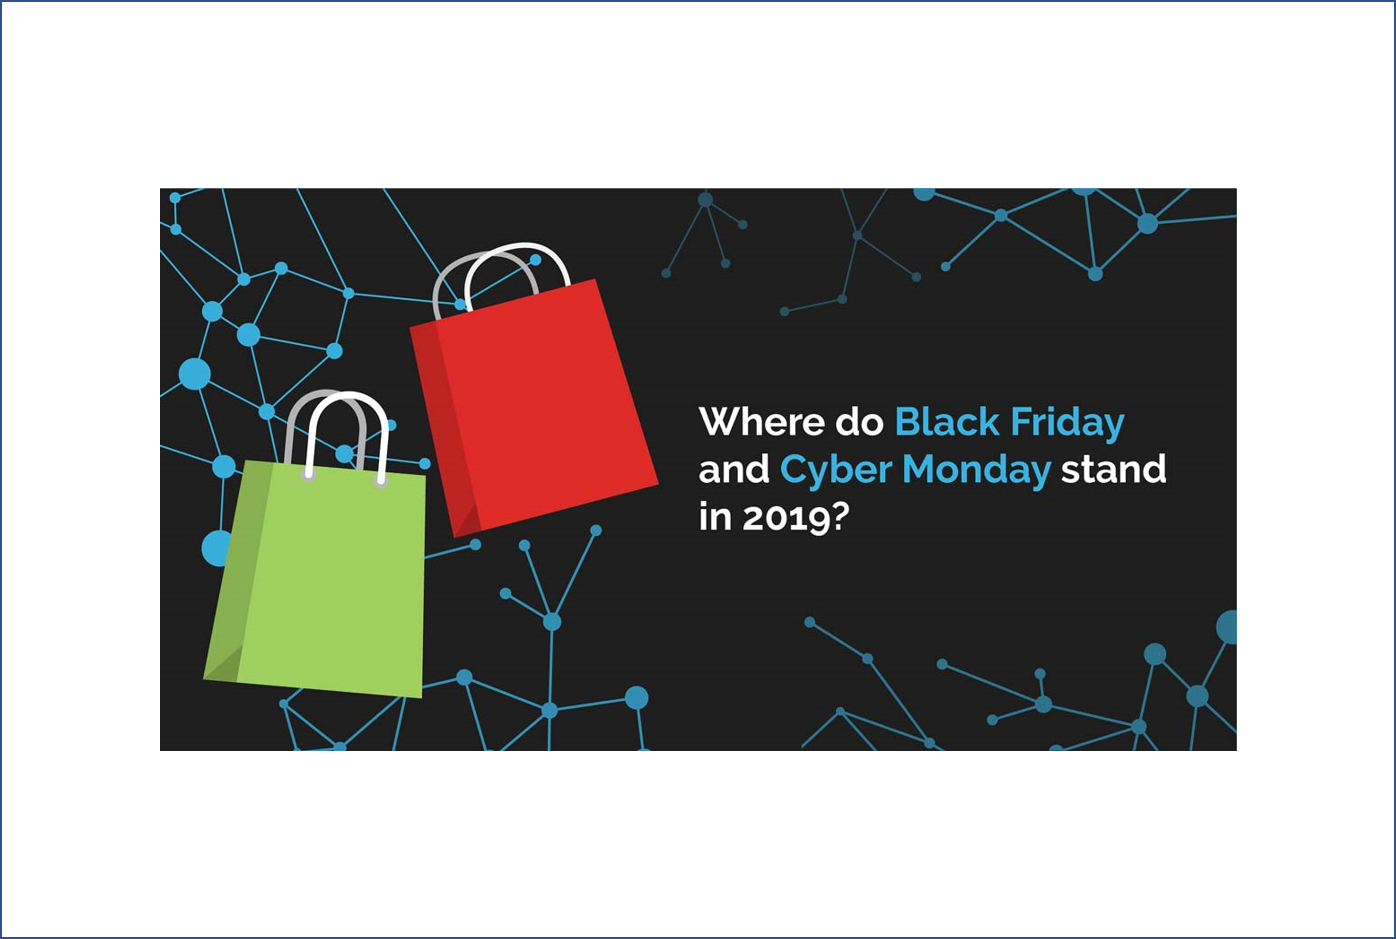 RETAIL MANAGEMENT SOLUTIONS FOR BLACK FRIDAY AND CYBER MONDAY